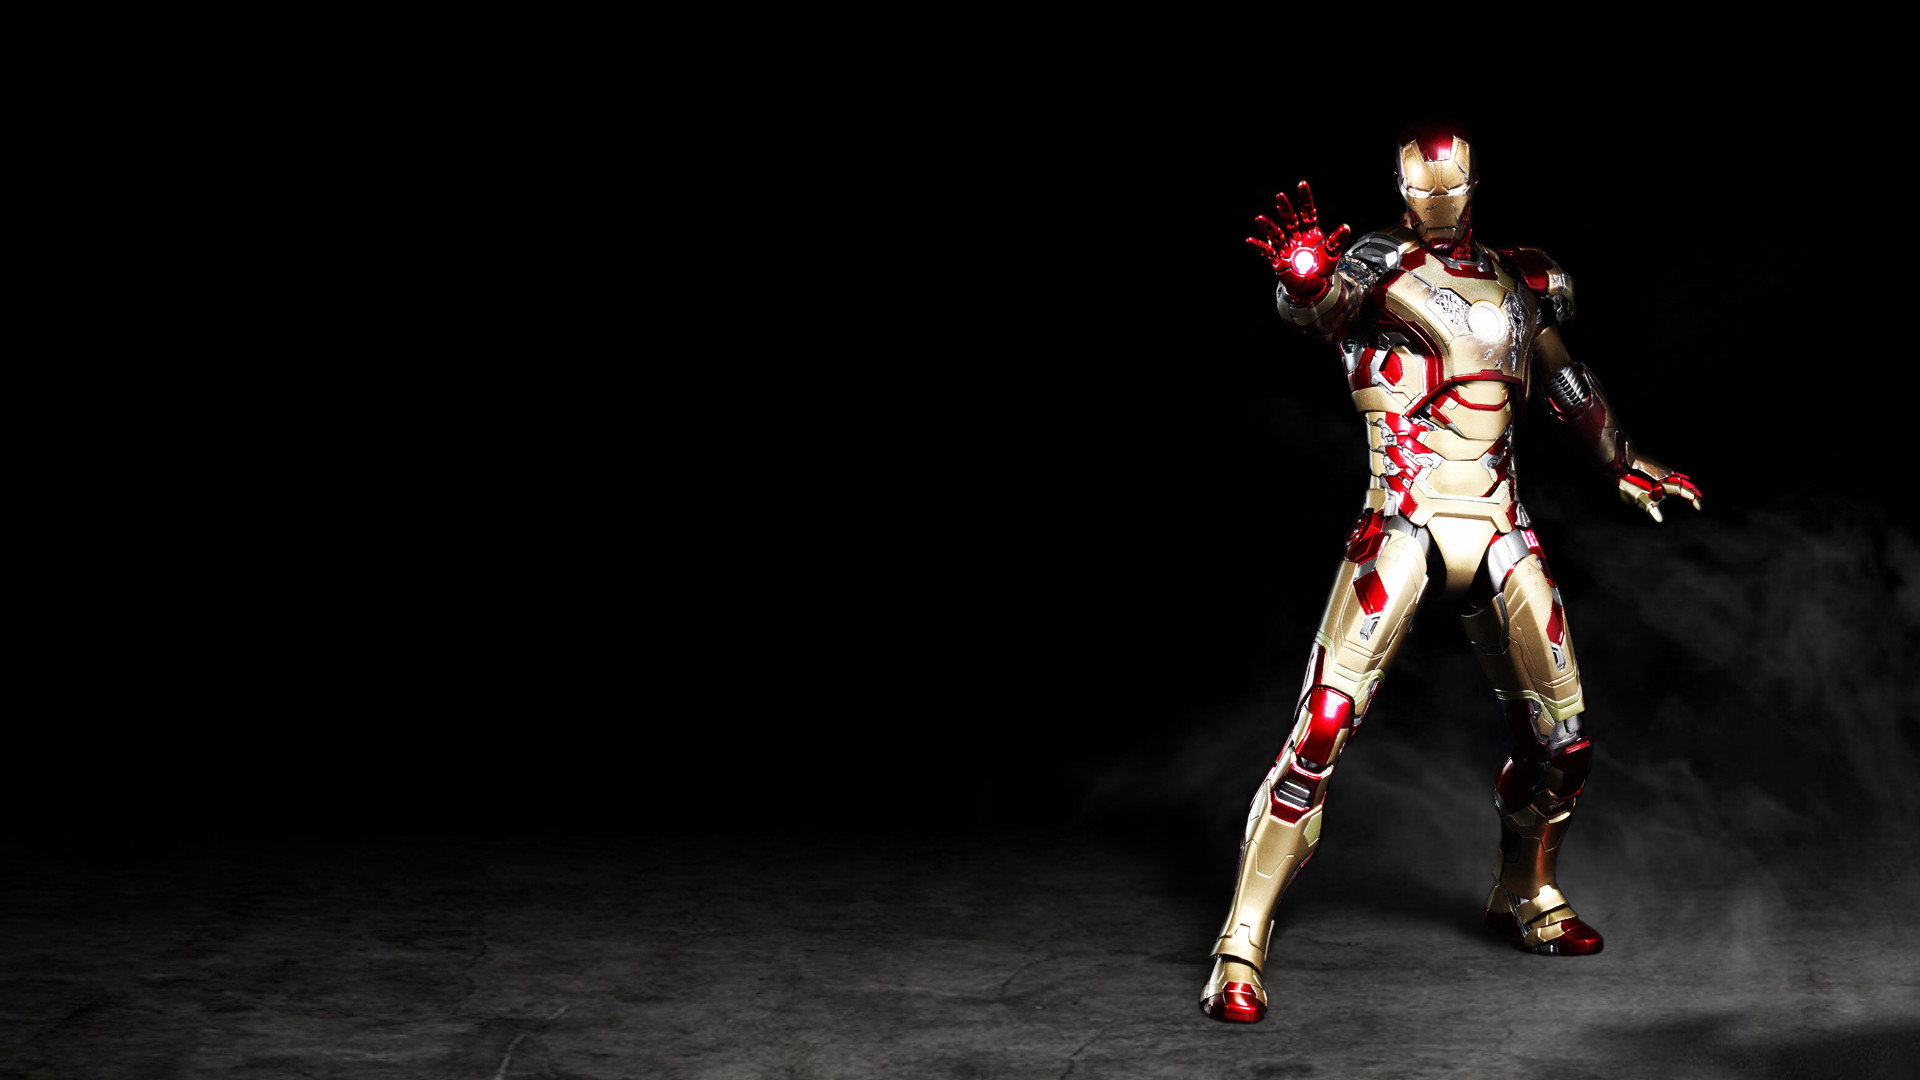 1920x1080 Iron Man Wallpaper HD